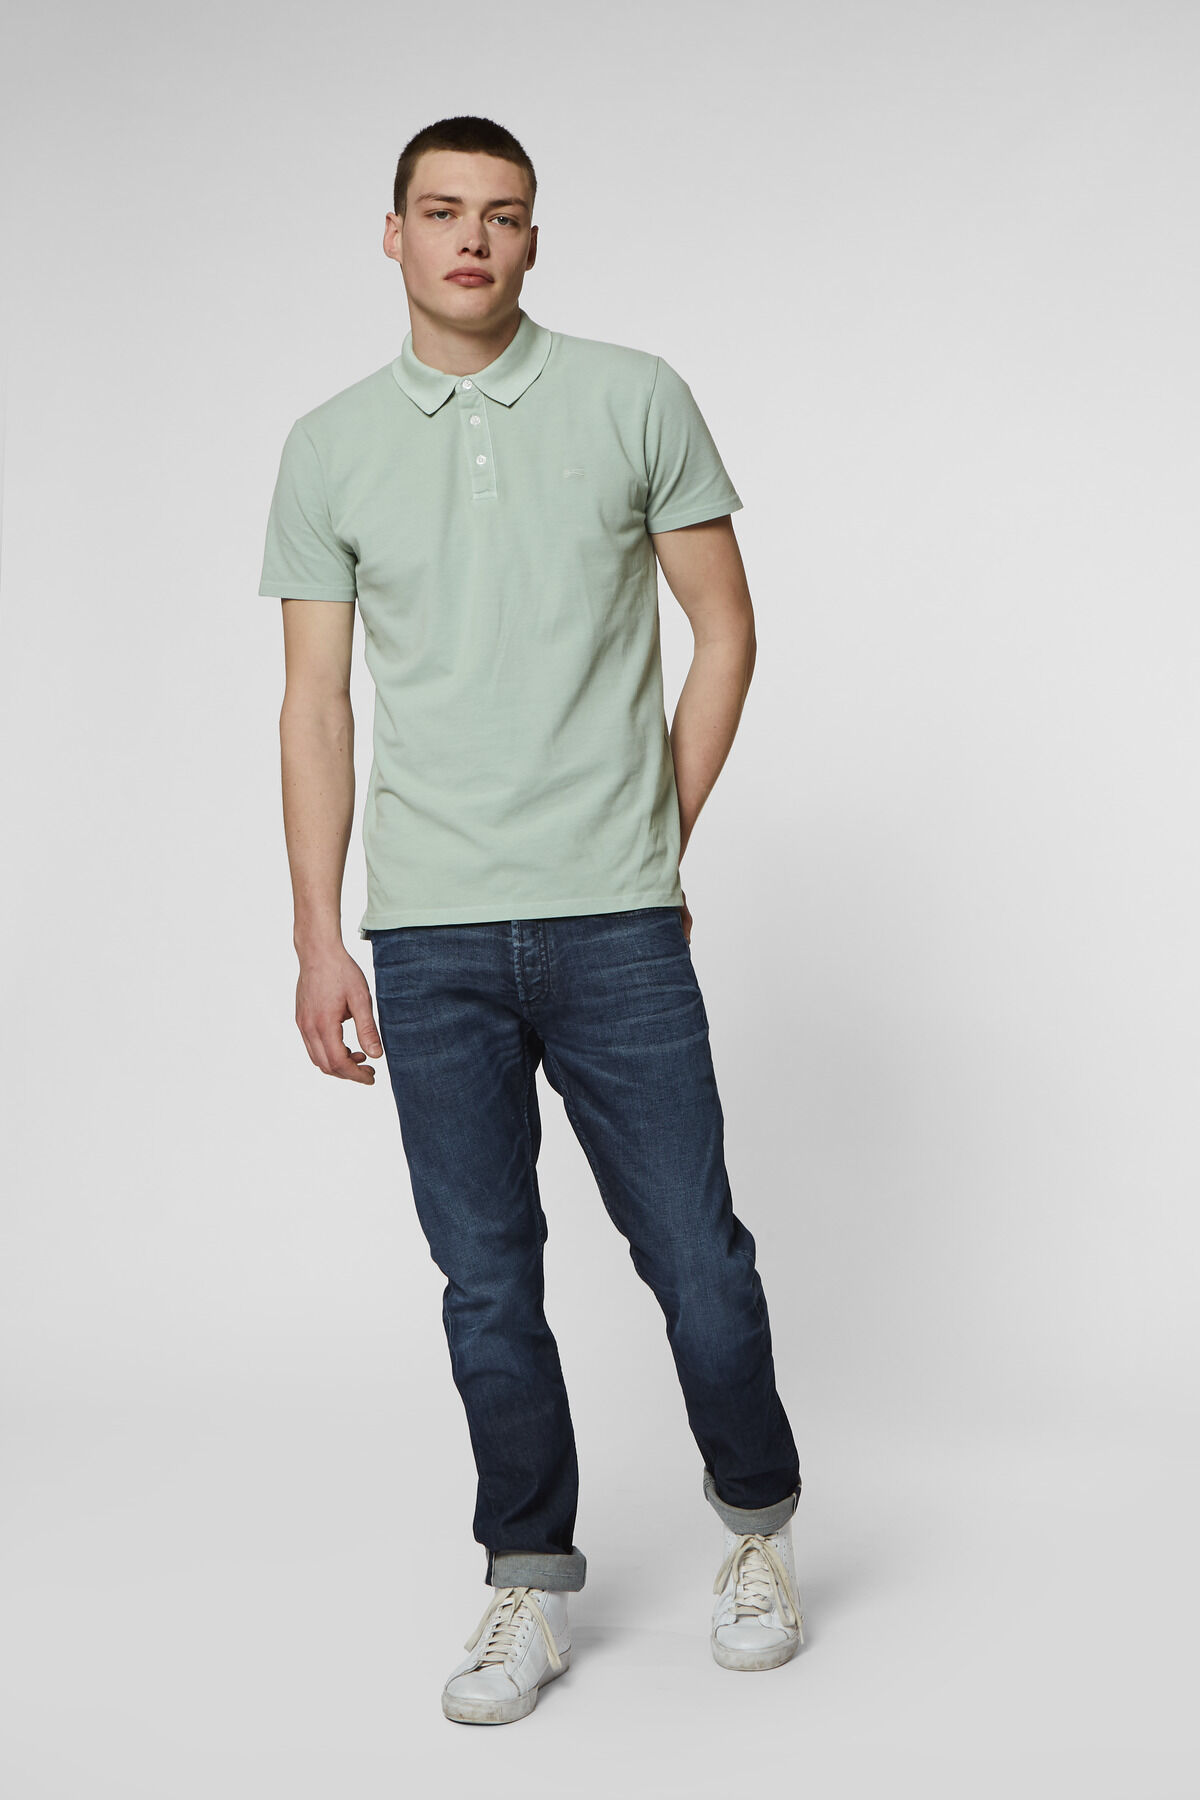 LUPO POLO Stretch Piqué Dyed - Slim Fit